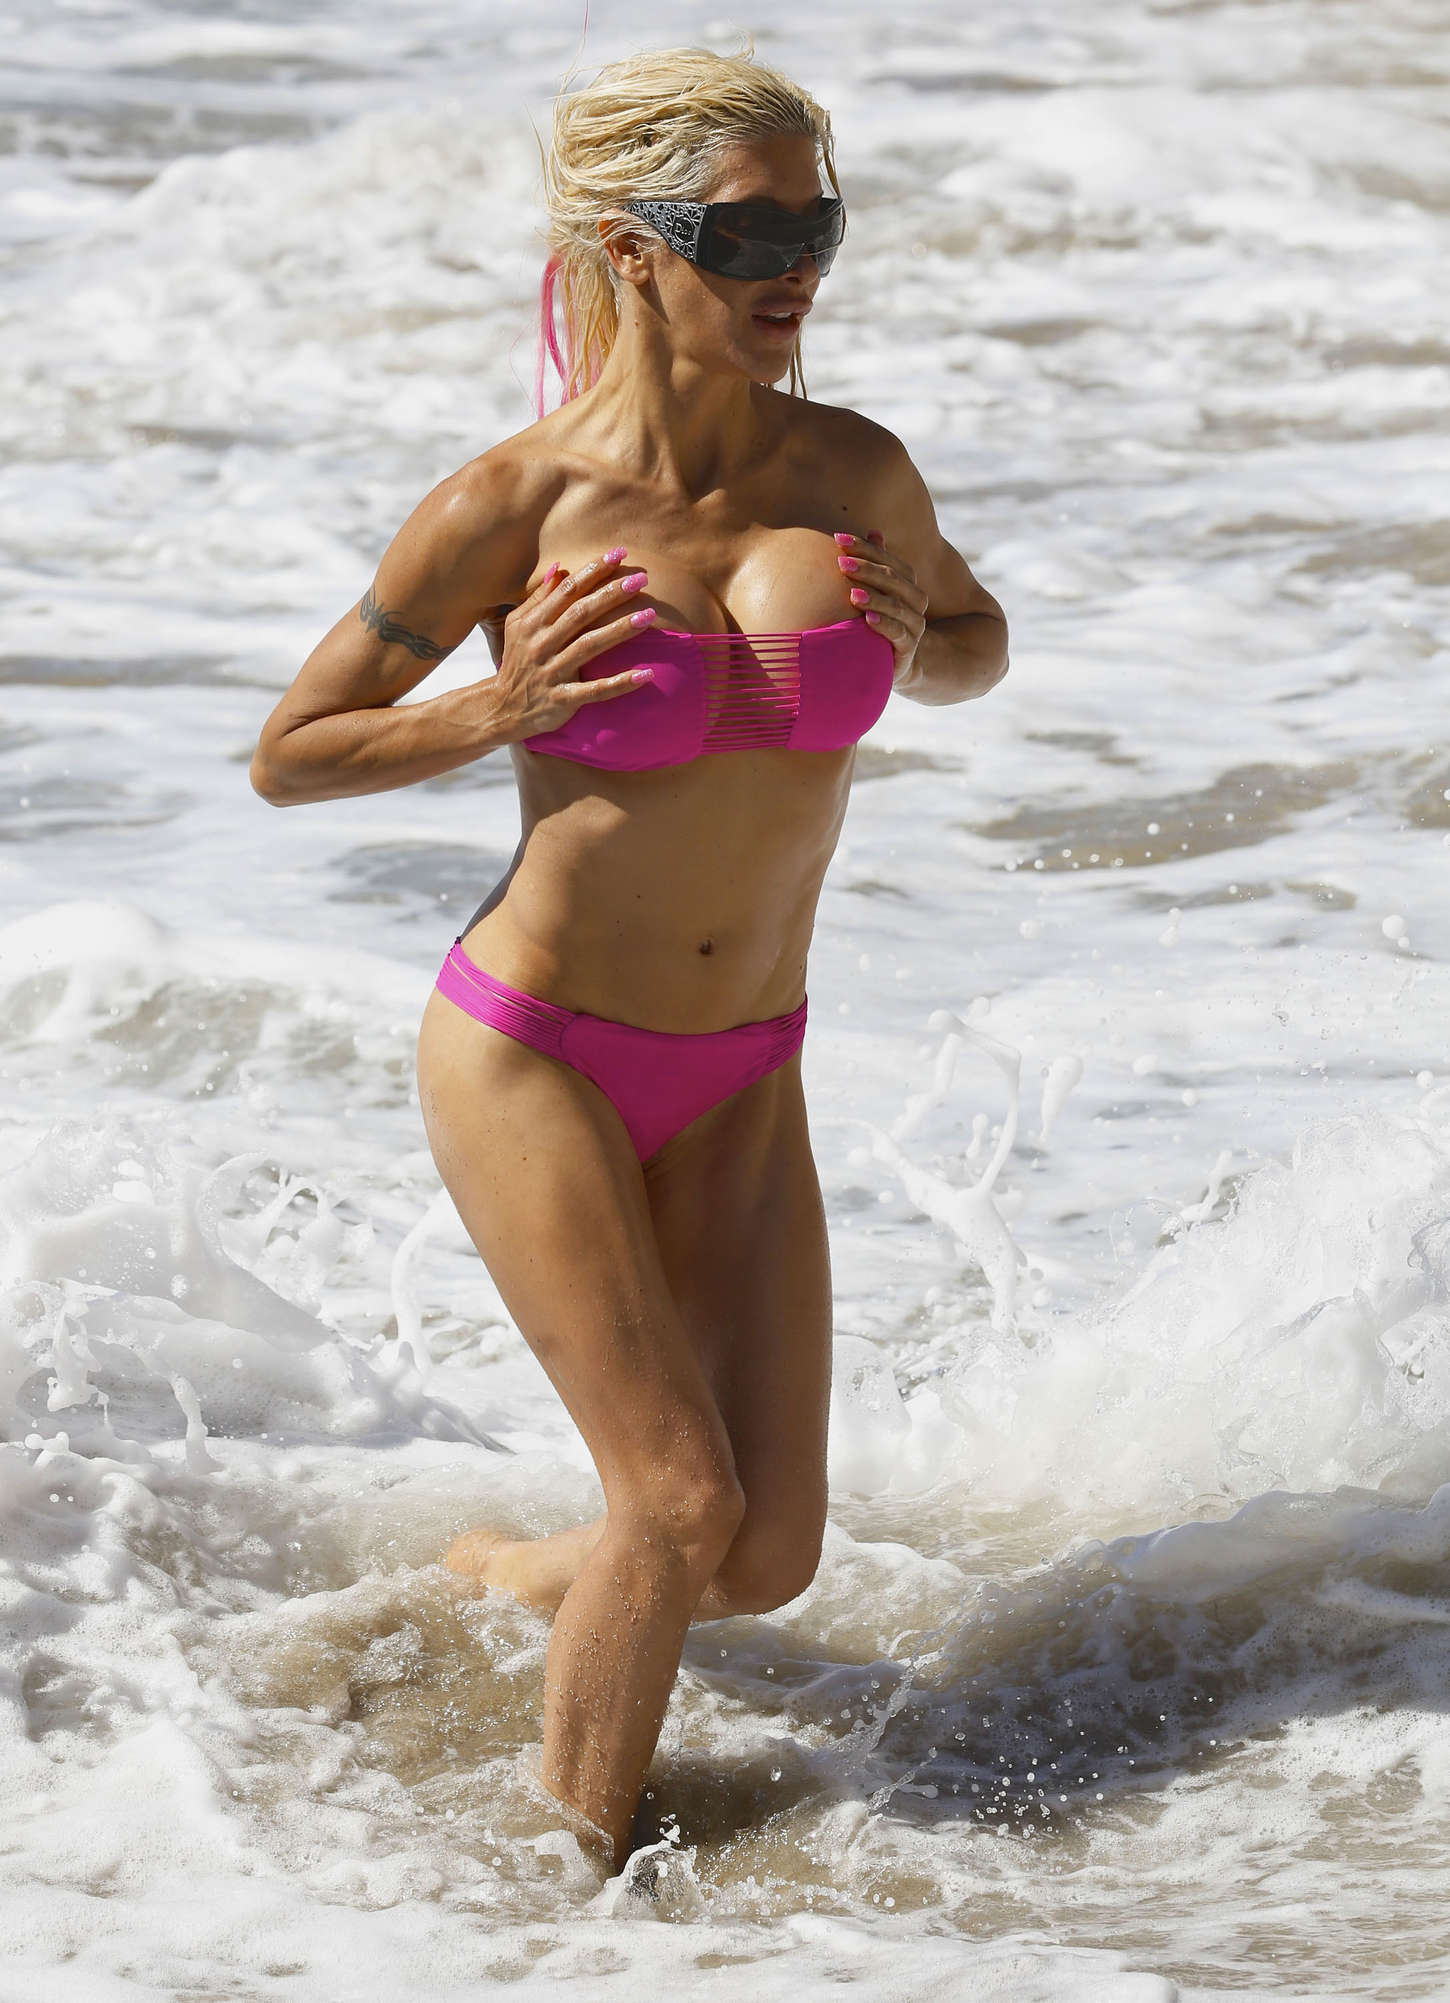 Frenchy Morgan in Pink Bikini in Malibu Pic 6 of 35